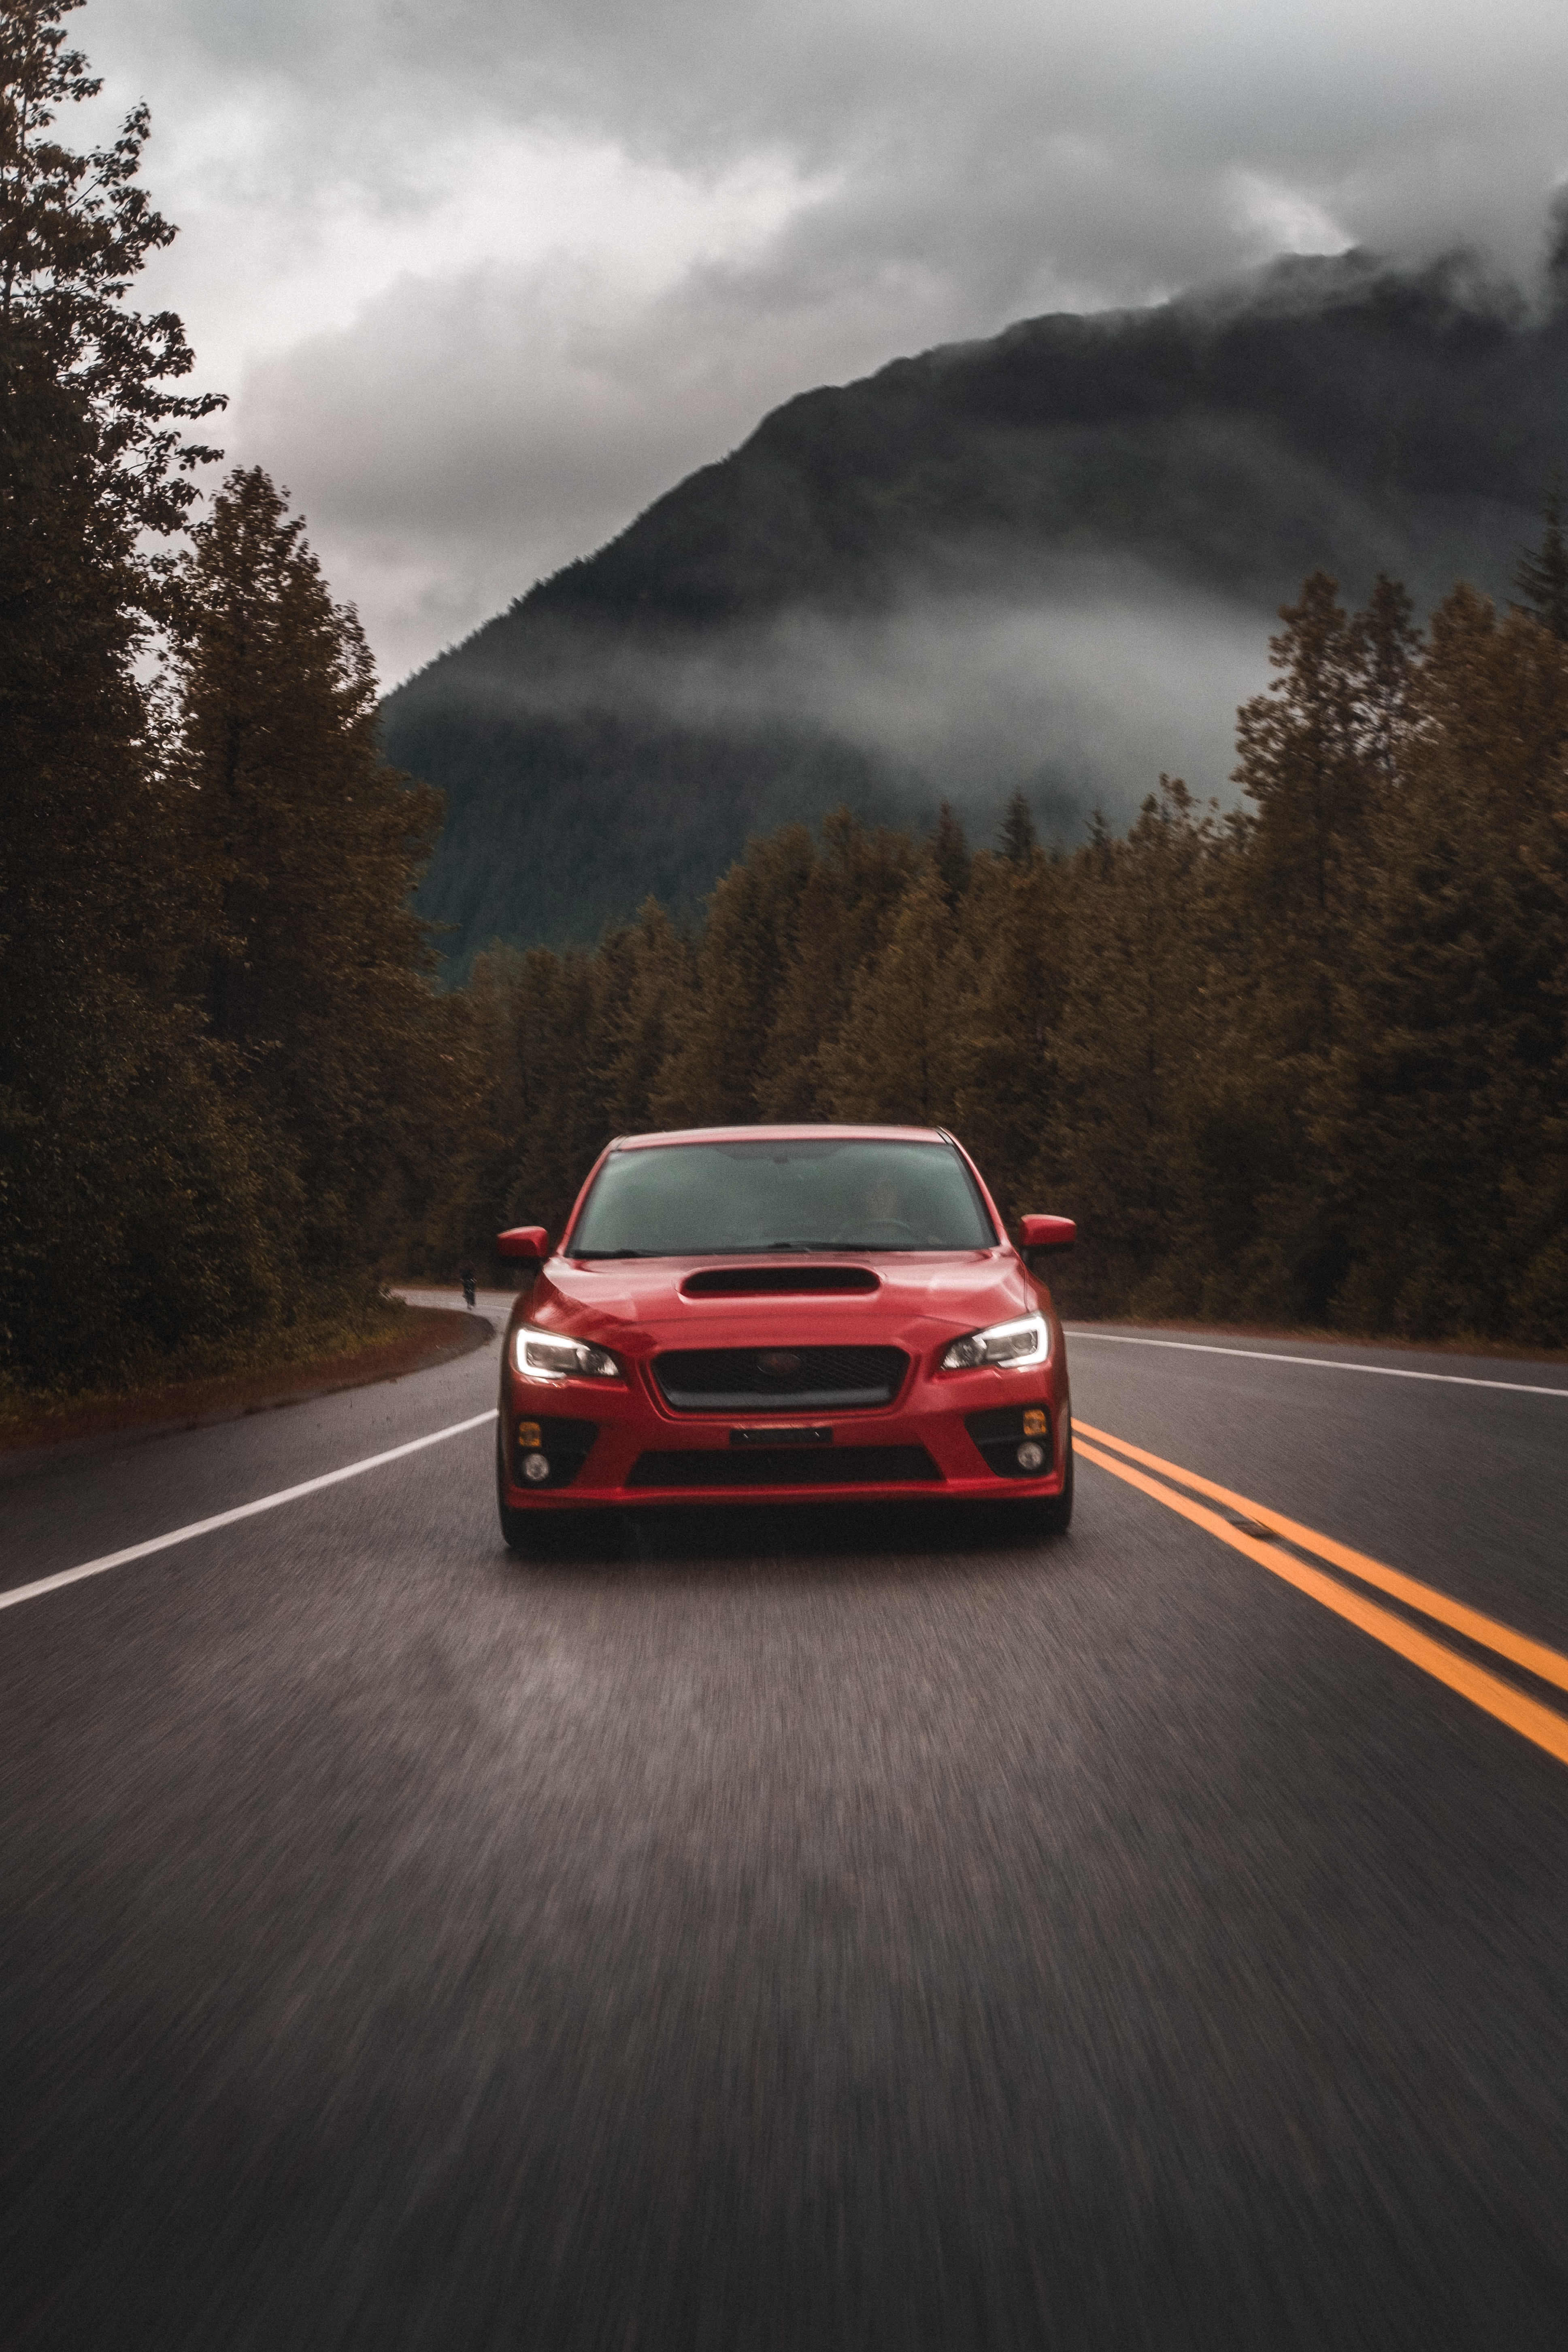 157975 Screensavers and Wallpapers Subaru for phone. Download Subaru, Cars, Road, Car, Speed pictures for free